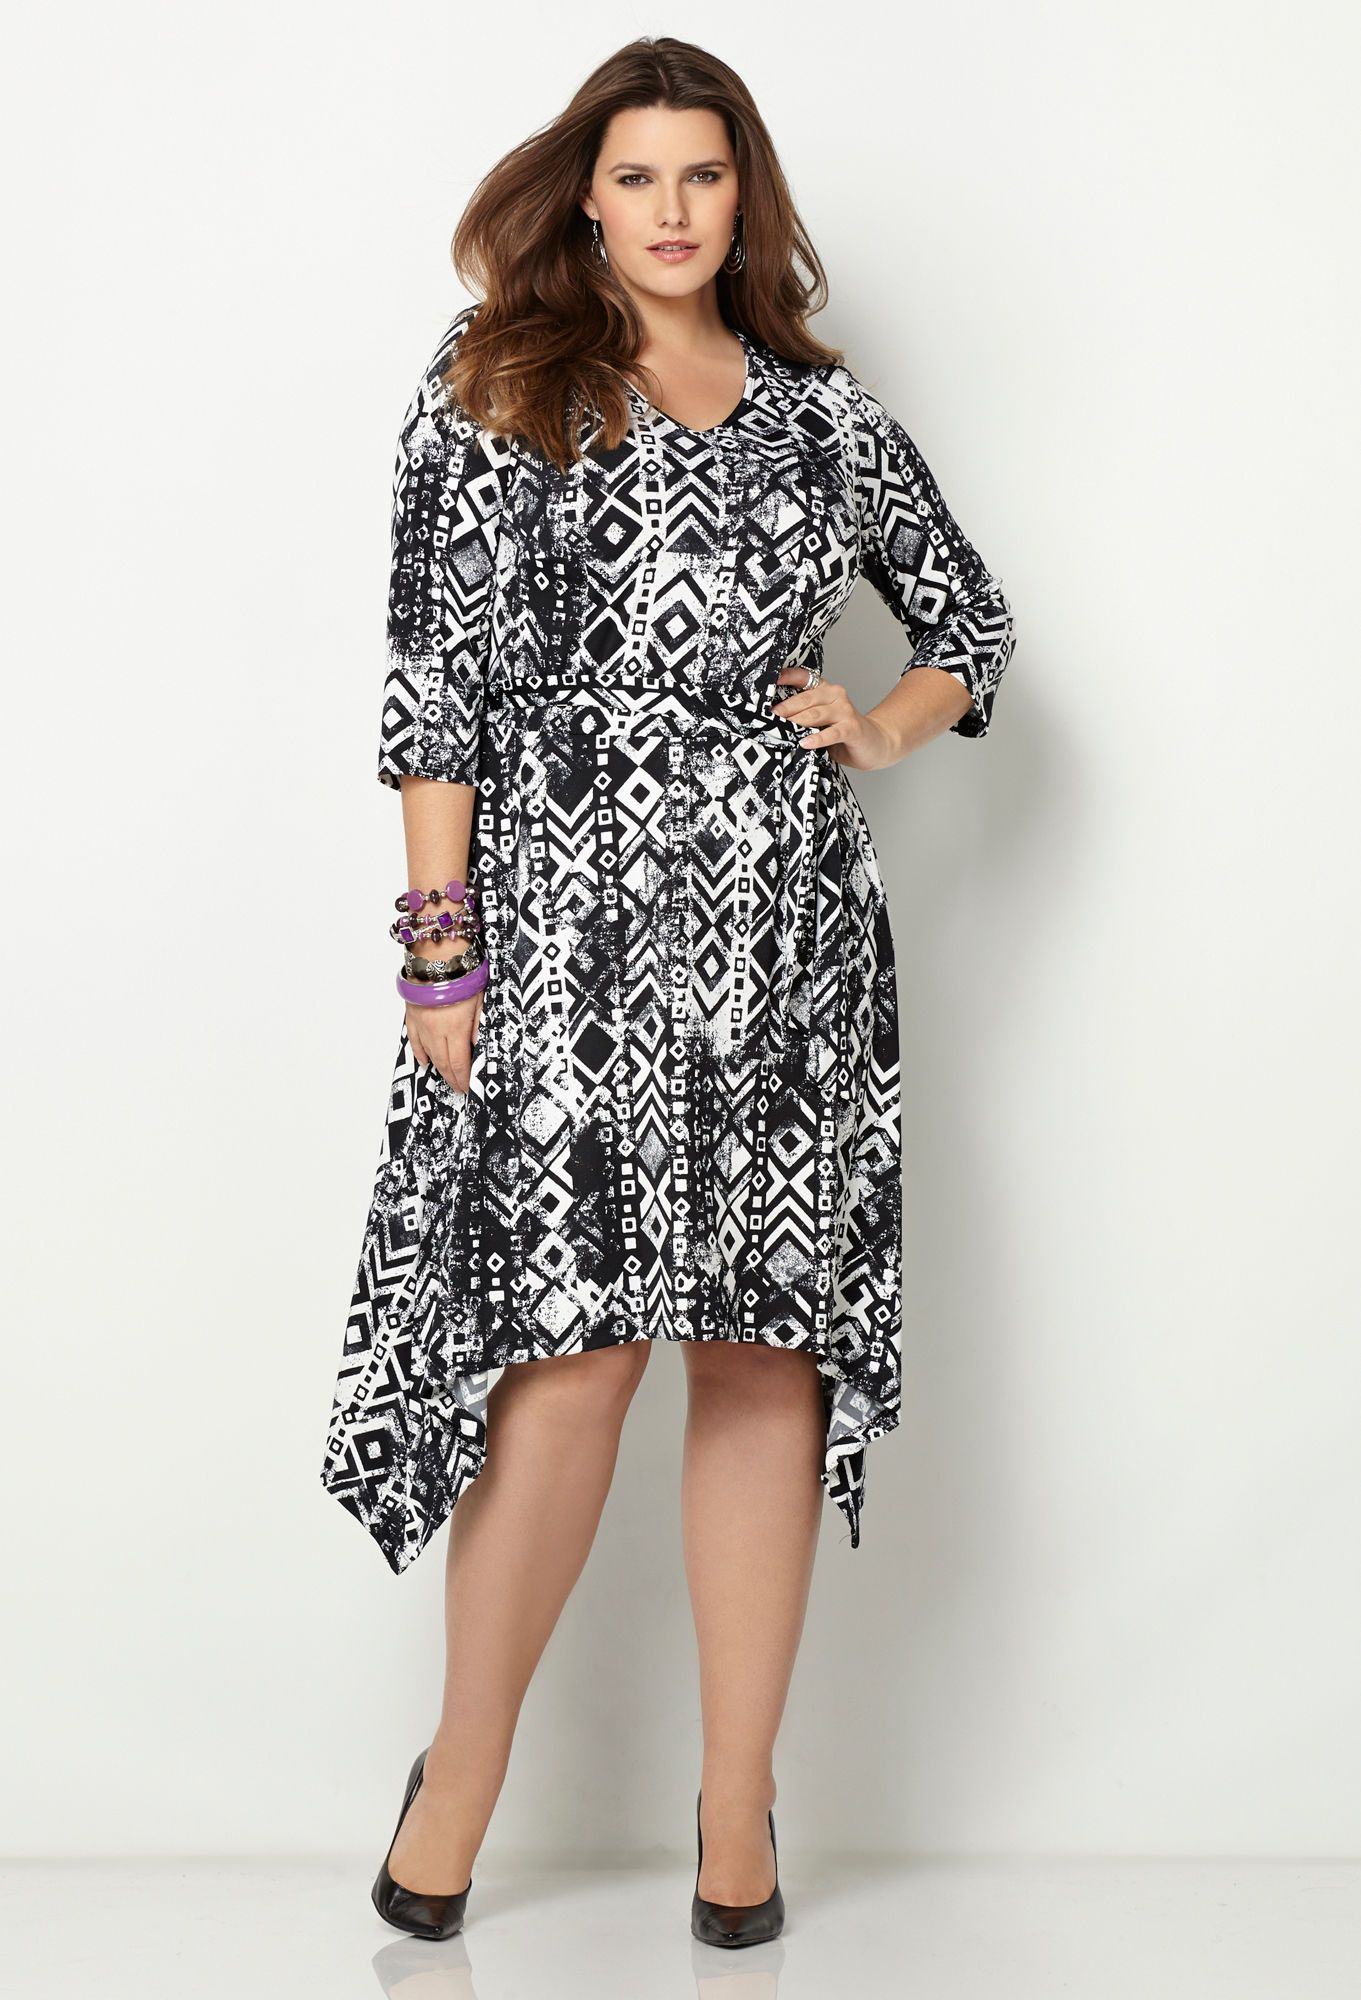 Shop Plus Size Casual Dresses | Avenue.com | My wardrobe ideas ...